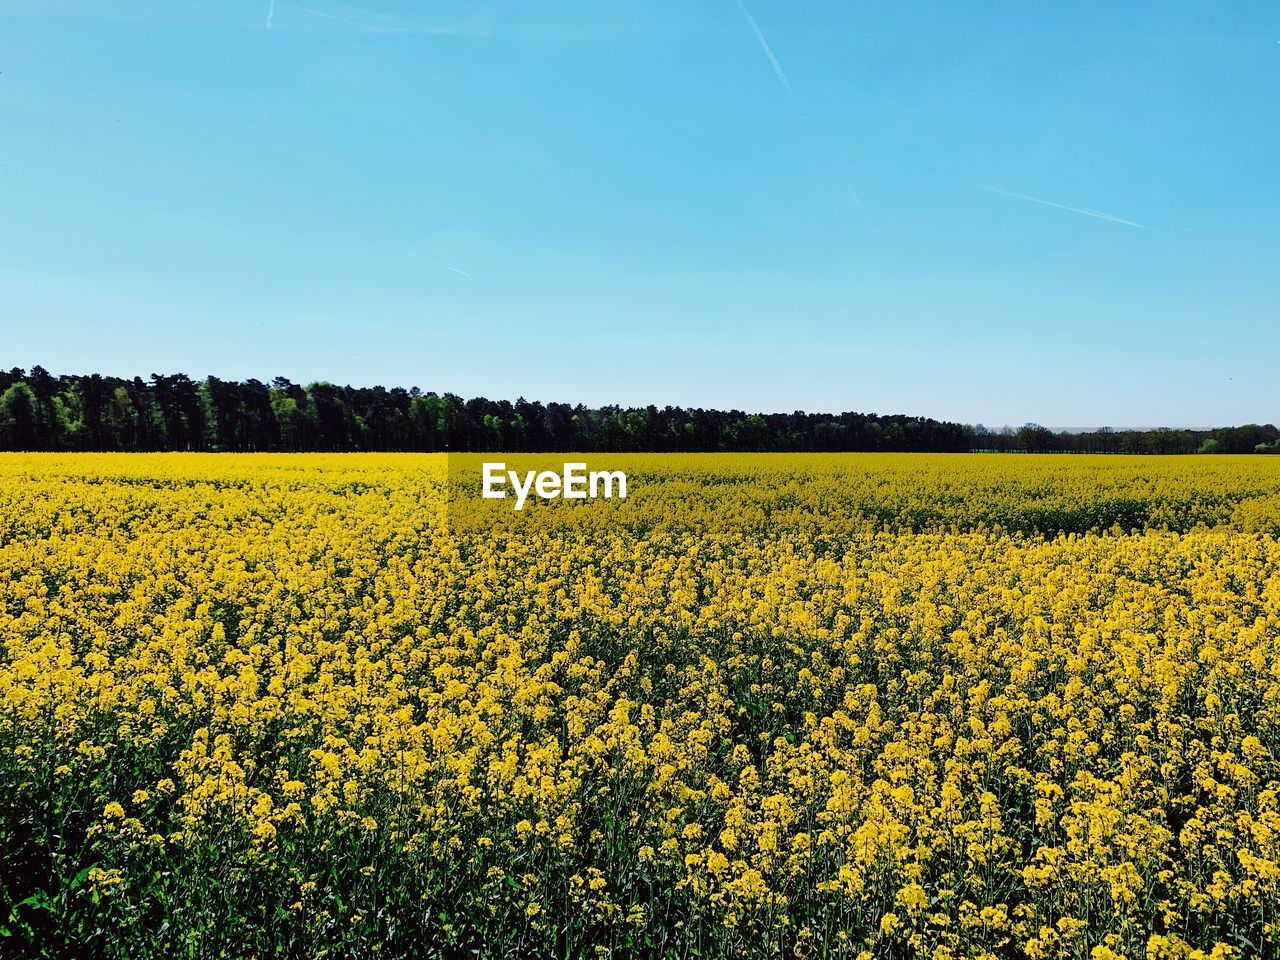 yellow, beauty in nature, landscape, land, sky, scenics - nature, tranquil scene, field, plant, tranquility, growth, flower, agriculture, oilseed rape, nature, rural scene, environment, flowering plant, day, freshness, no people, outdoors